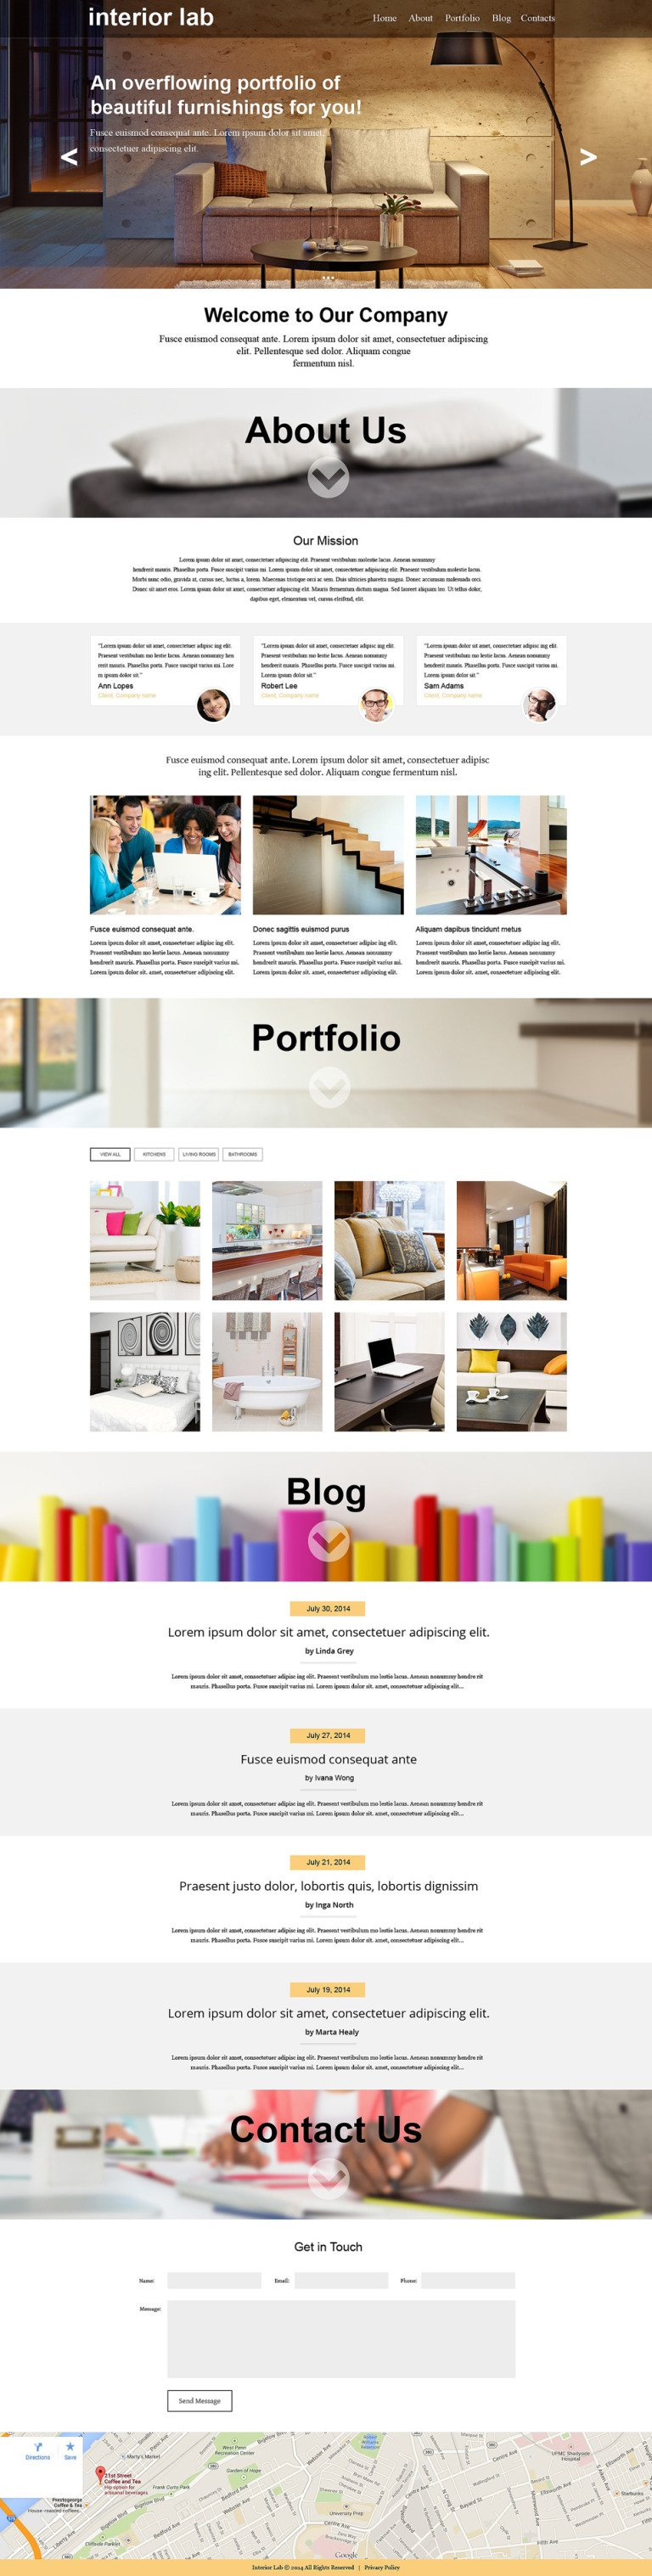 Interior Design Muse Template New Screenshots BIG